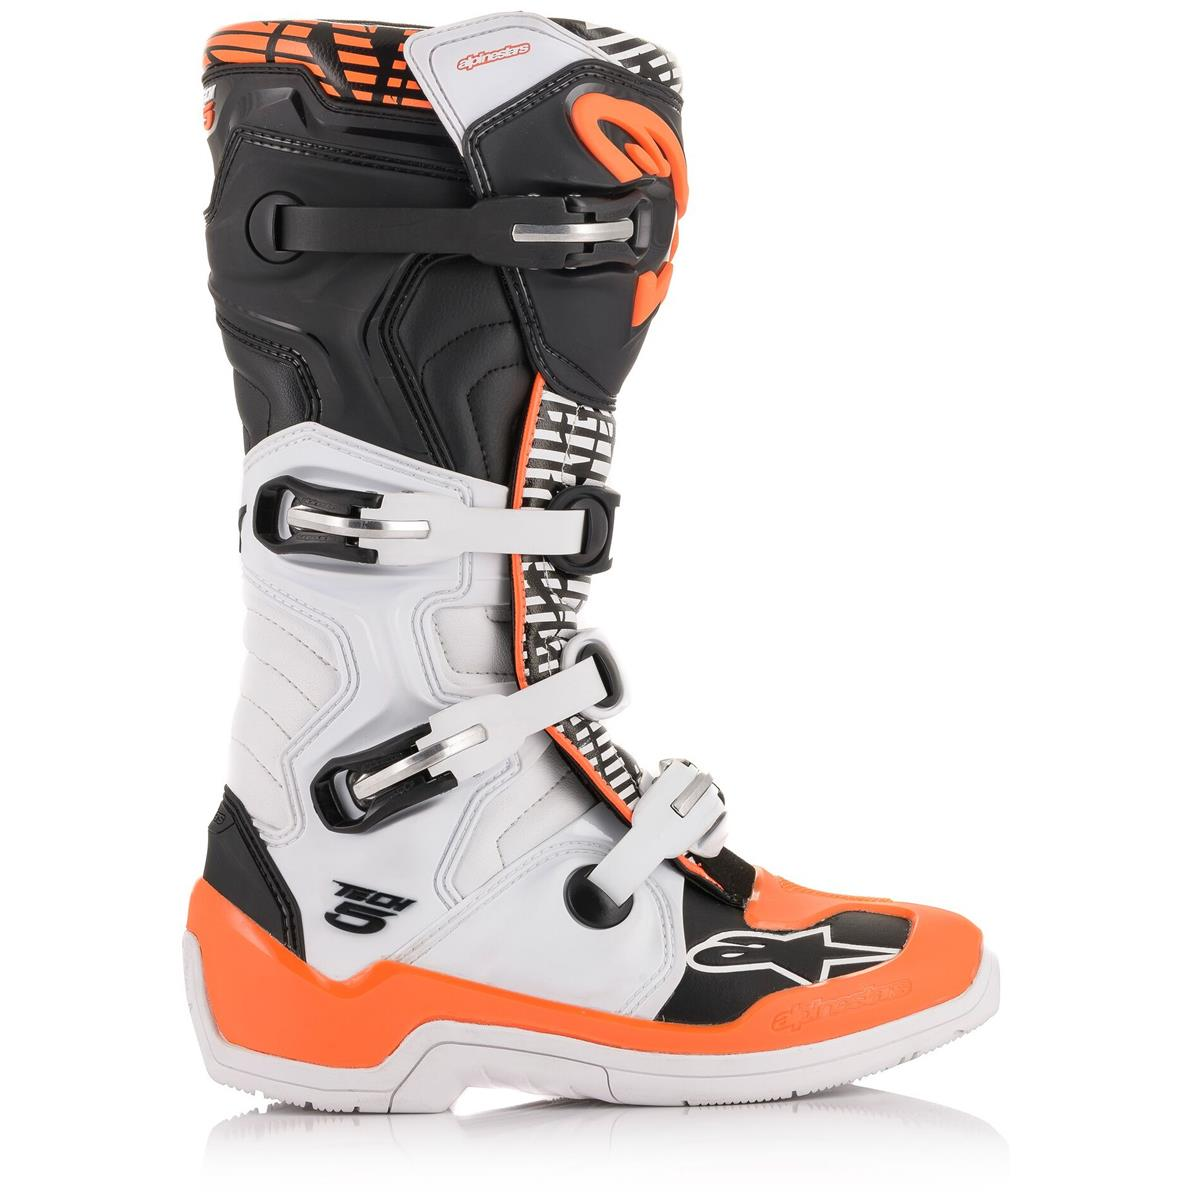 2015015 243 2020 Alpinestars Tech 5 Boots White Black Orange Fluo Motocross Enduro Laarzen Stiefel Bottes